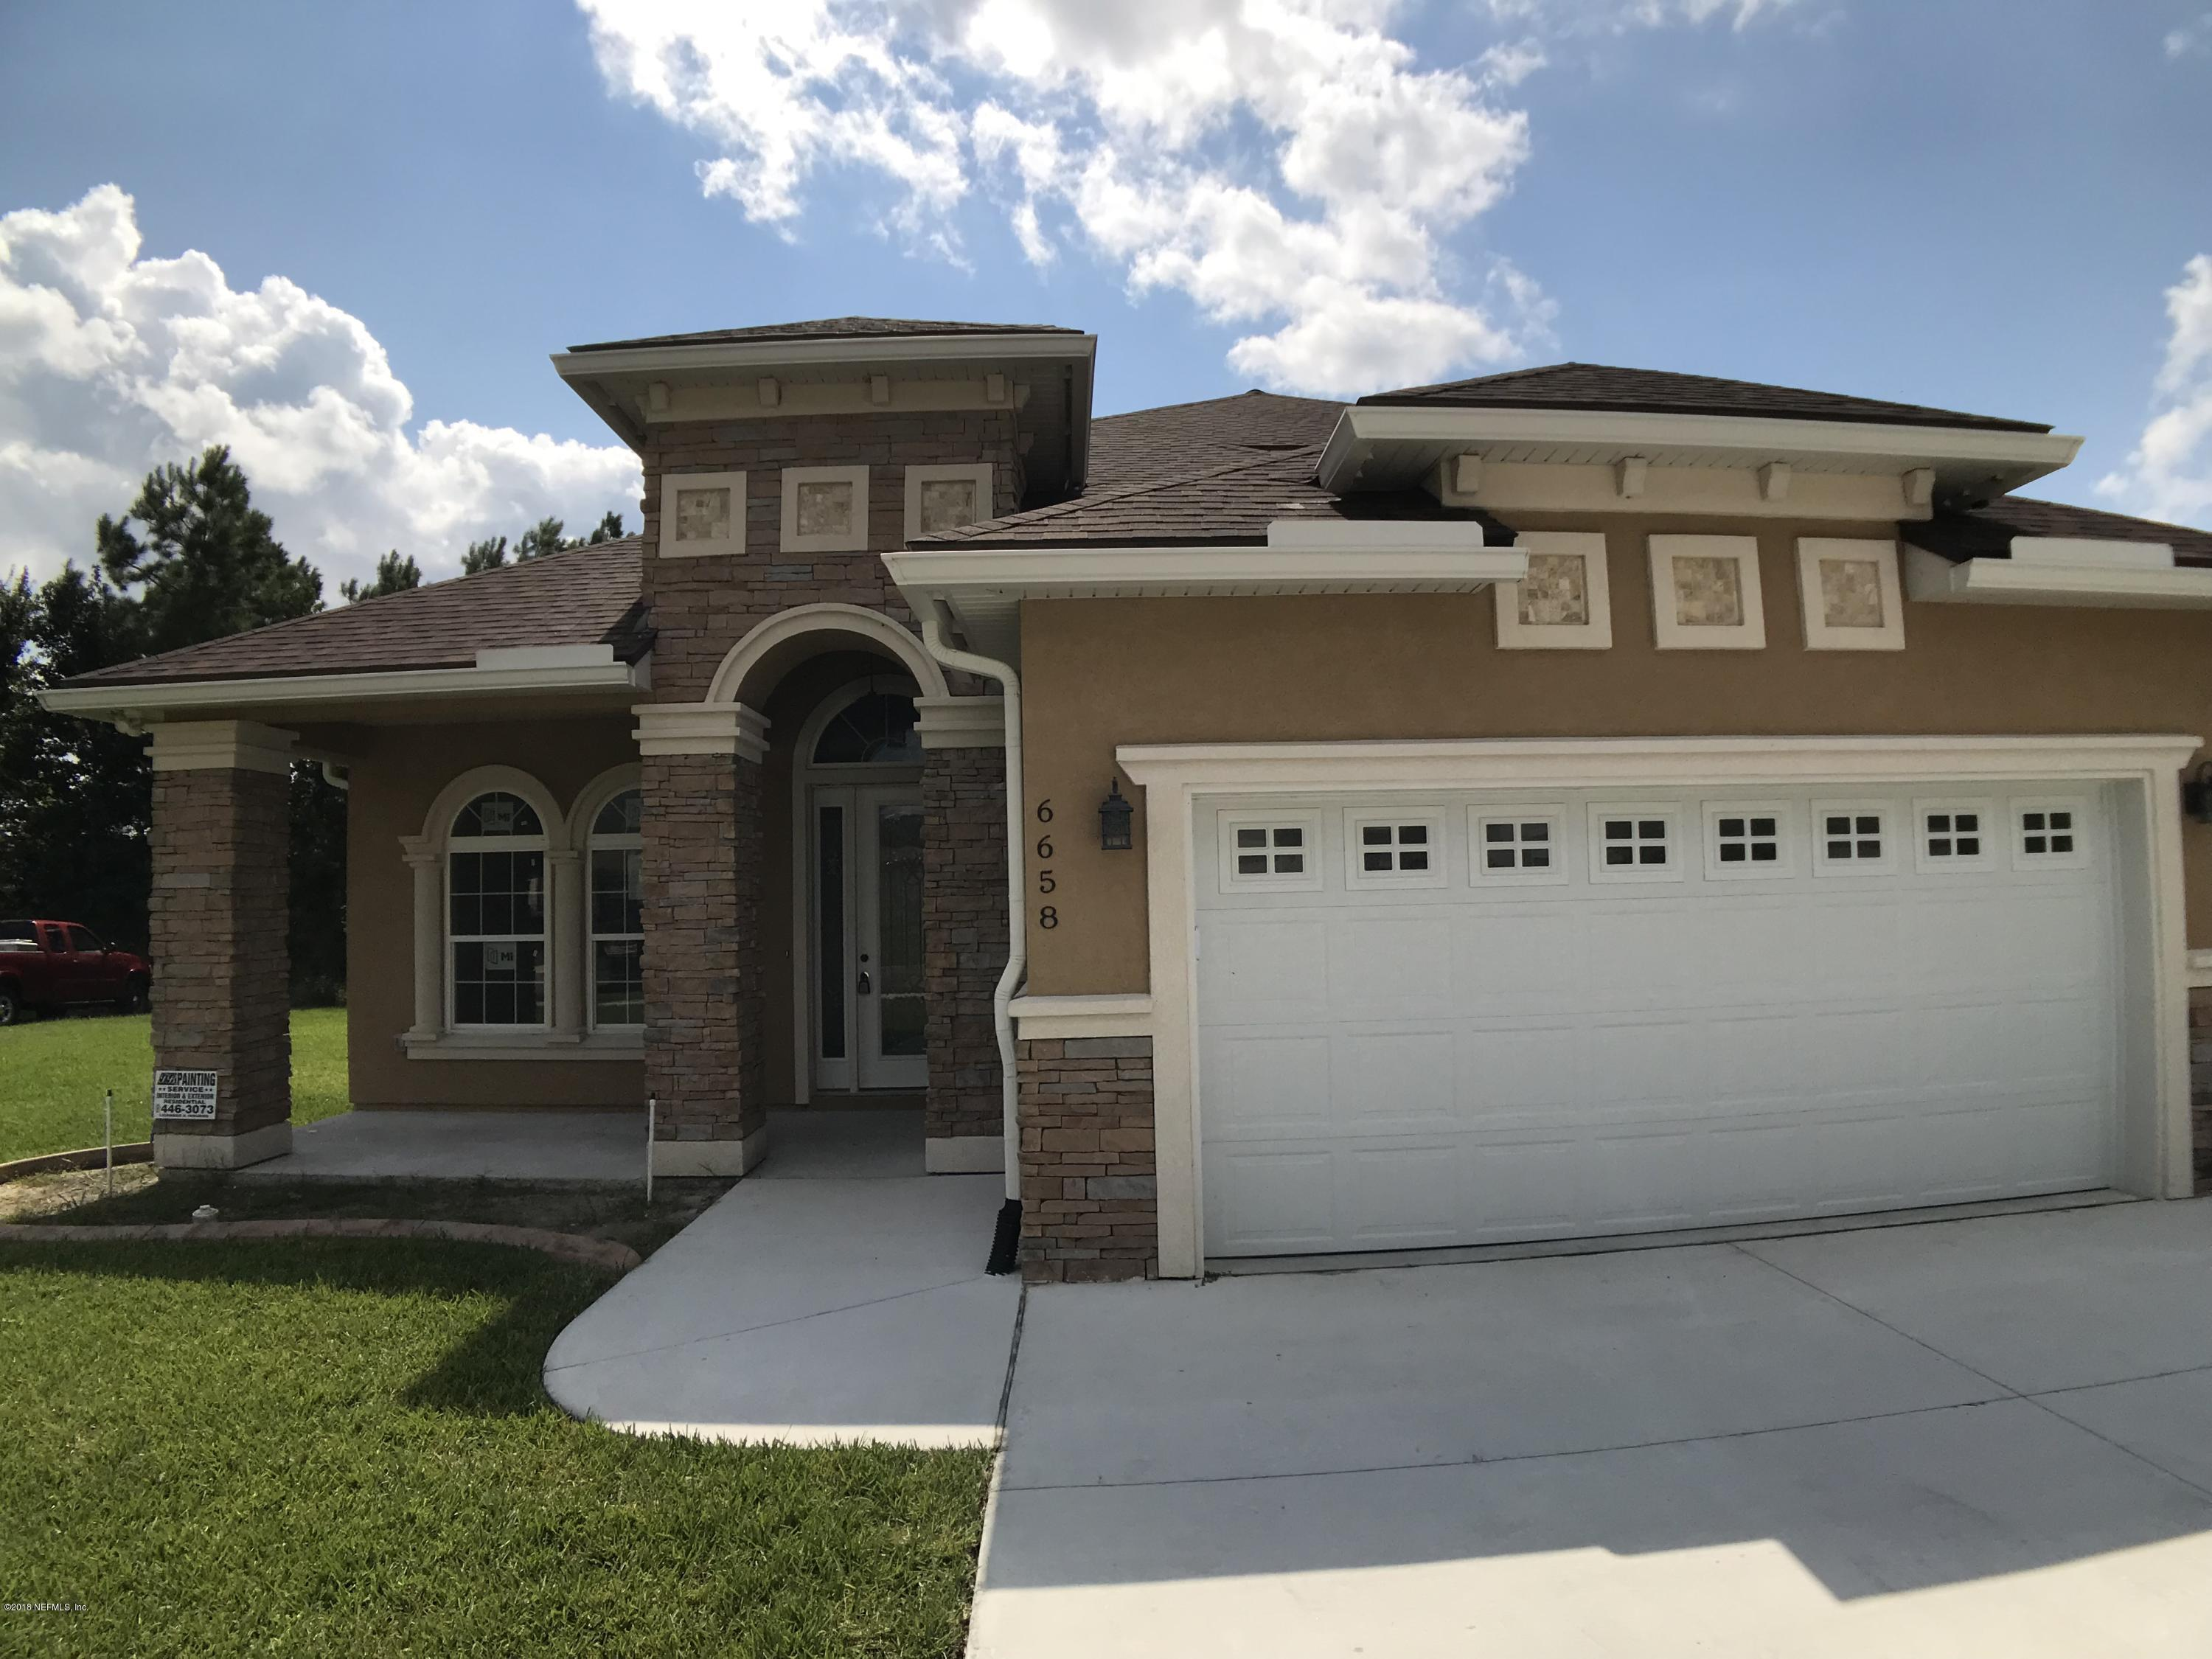 6658 RIVER FALLS, JACKSONVILLE, FLORIDA 32219, 4 Bedrooms Bedrooms, ,3 BathroomsBathrooms,Residential - single family,For sale,RIVER FALLS,912221